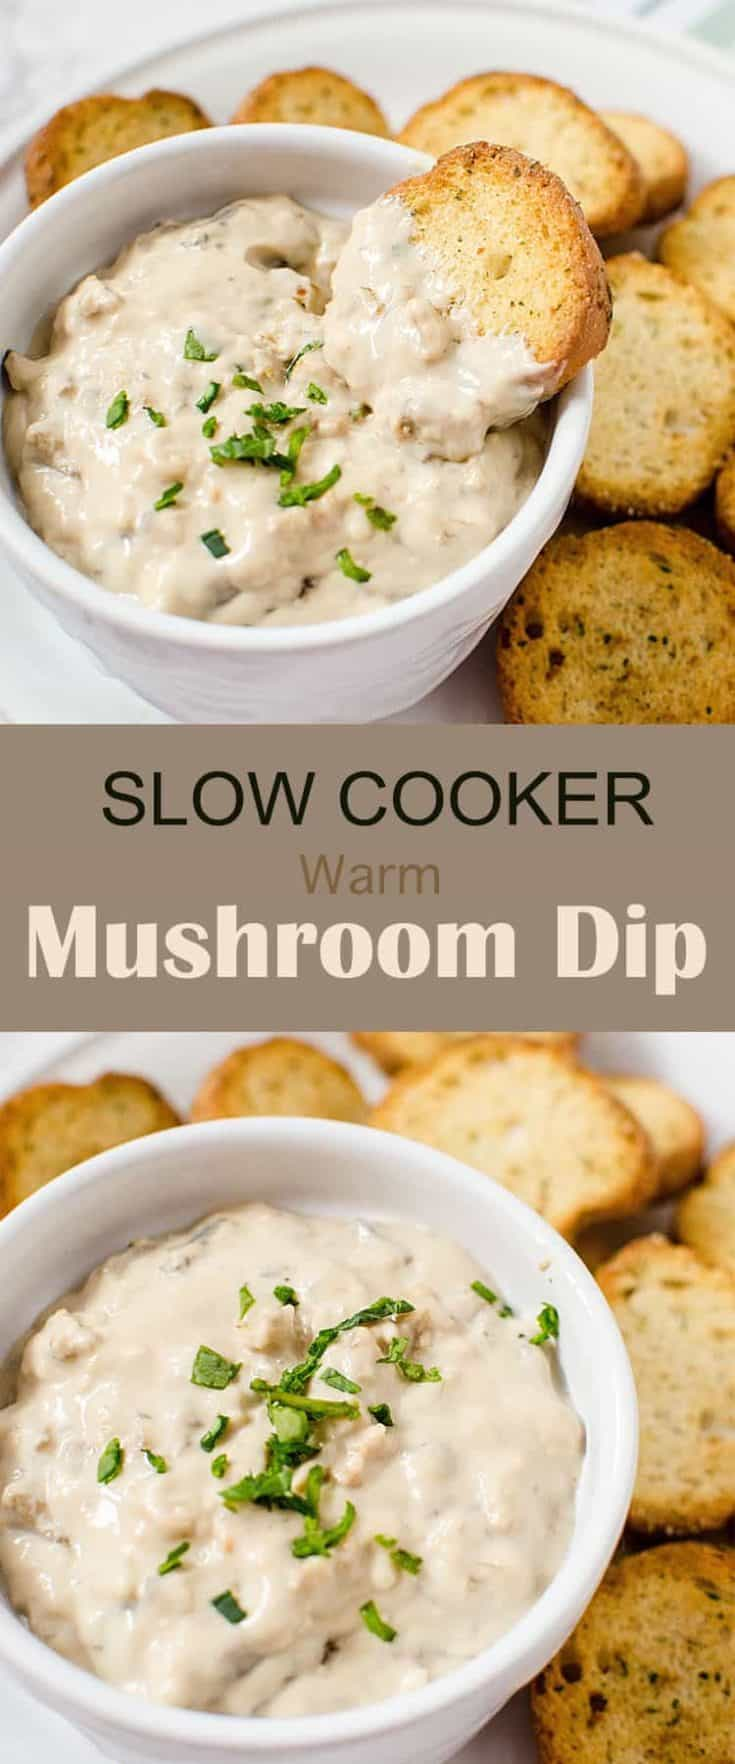 Slow Cooker Warm Mushroom Dip appetizer recipe, I love that it's made in the crockpot, so it's one you can make while getting doing other things. Delicious! #appetizerdip #diprecipe #mushroomdip